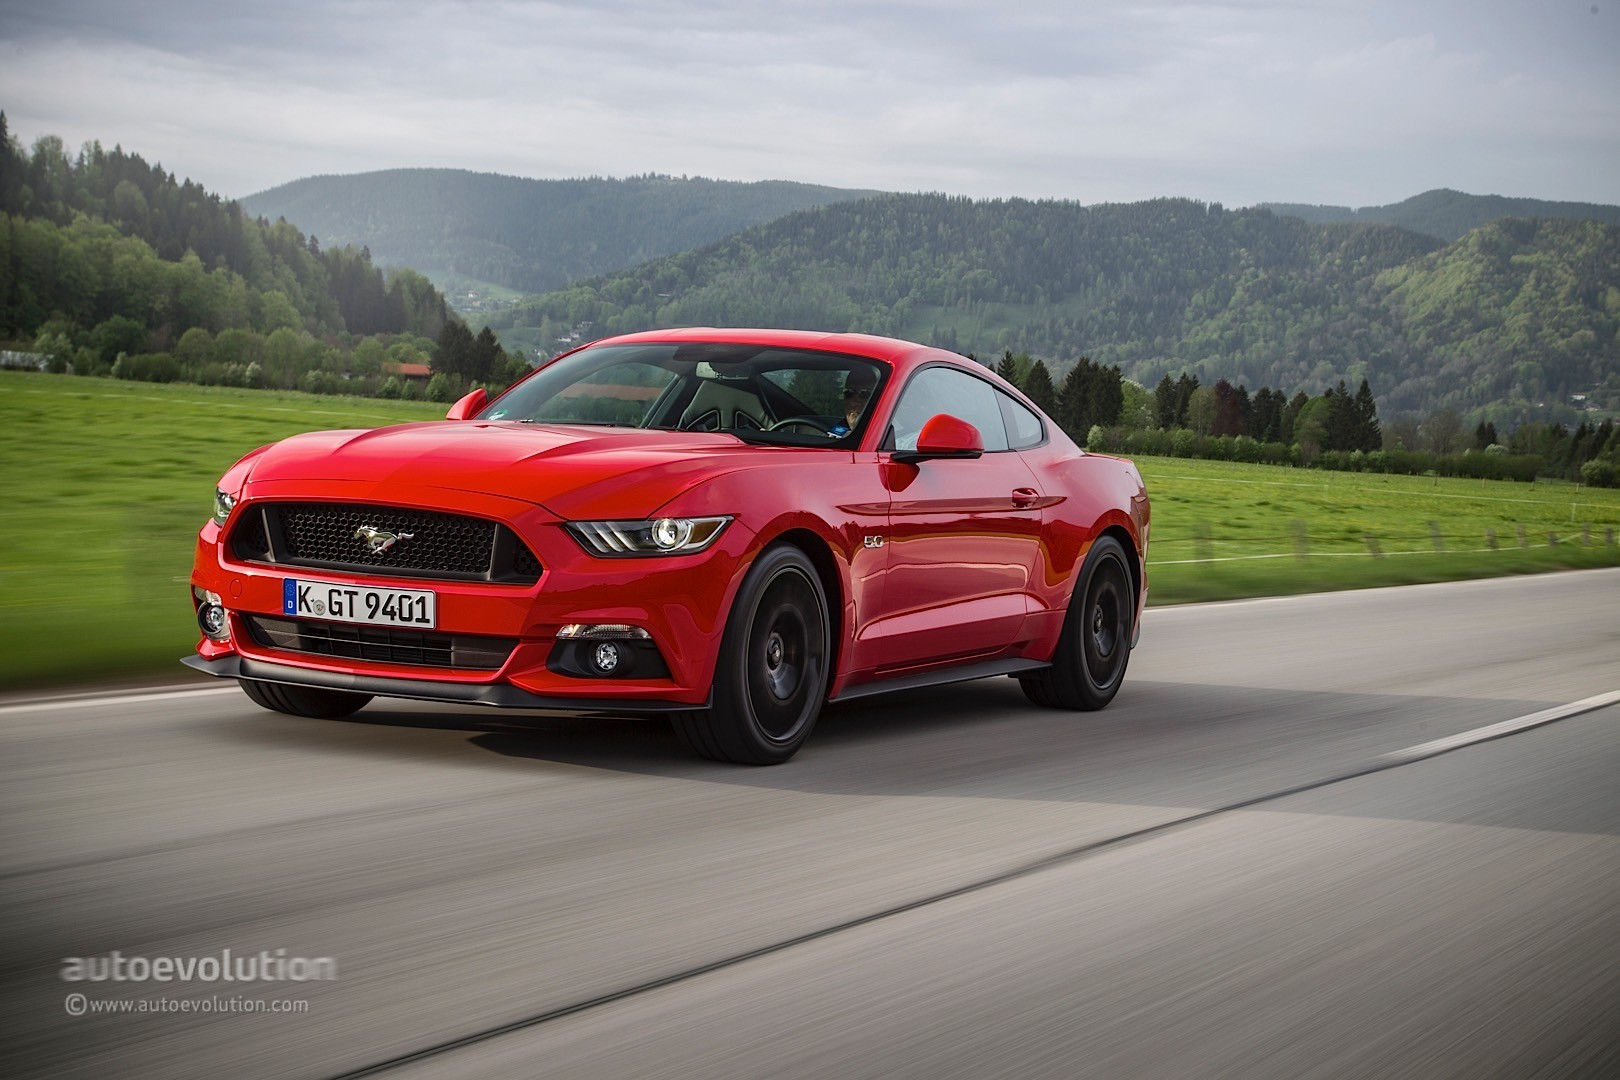 2018 Mustang Ecoboost >> 2015 Ford Mustang Review - autoevolution